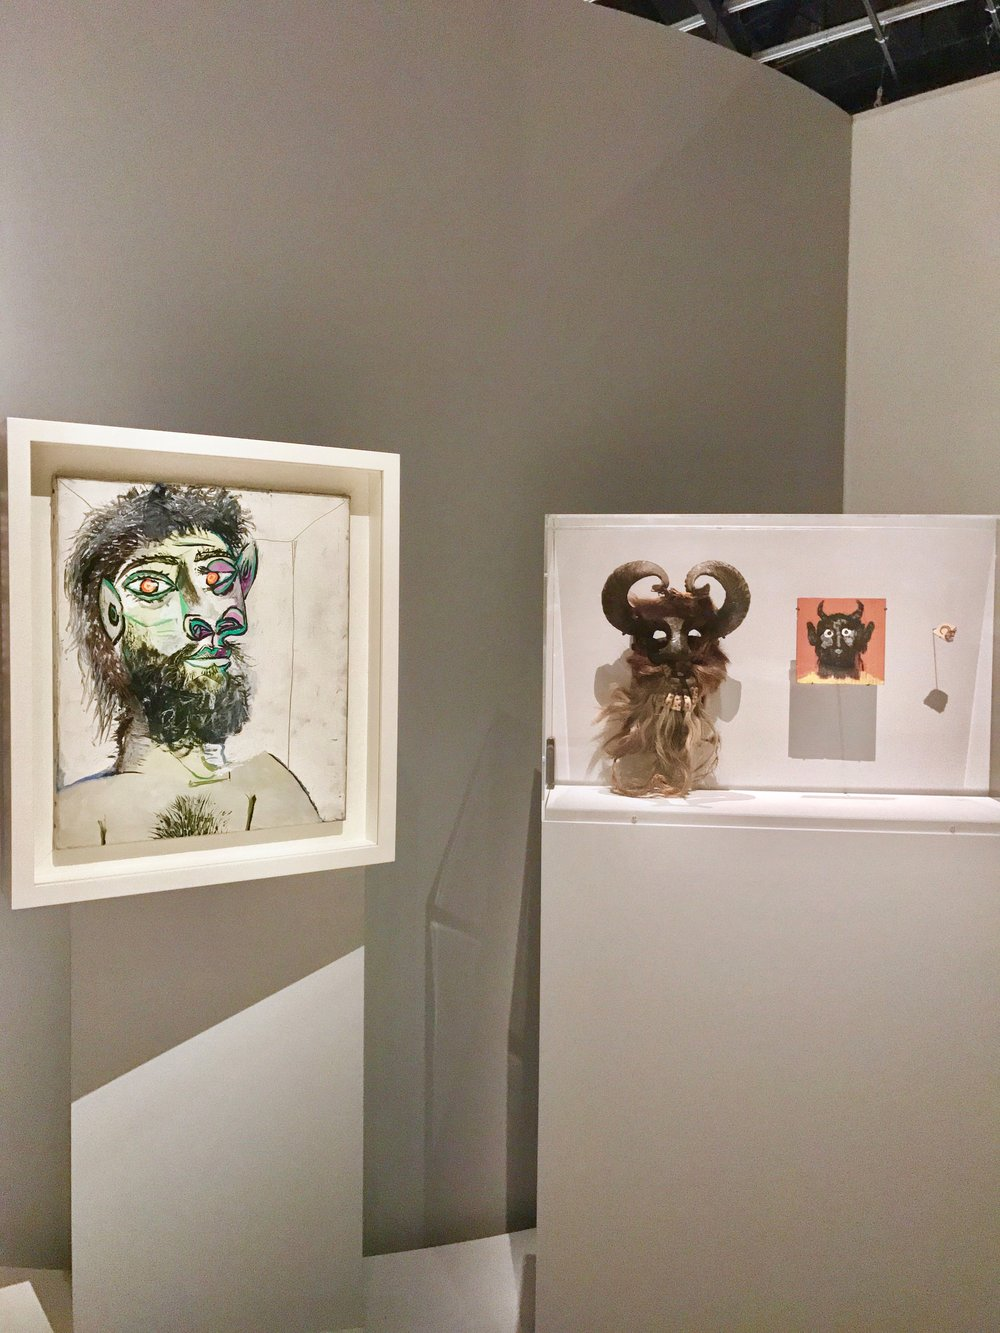 Pablo Picasso,  Tê  te d'homme Barbu, 1979,  Mexican Mask from the 20th Century and Pablo Picasso,  Carreau Industriel Dècorè au Verso d'une Tête de Faune,  1961.